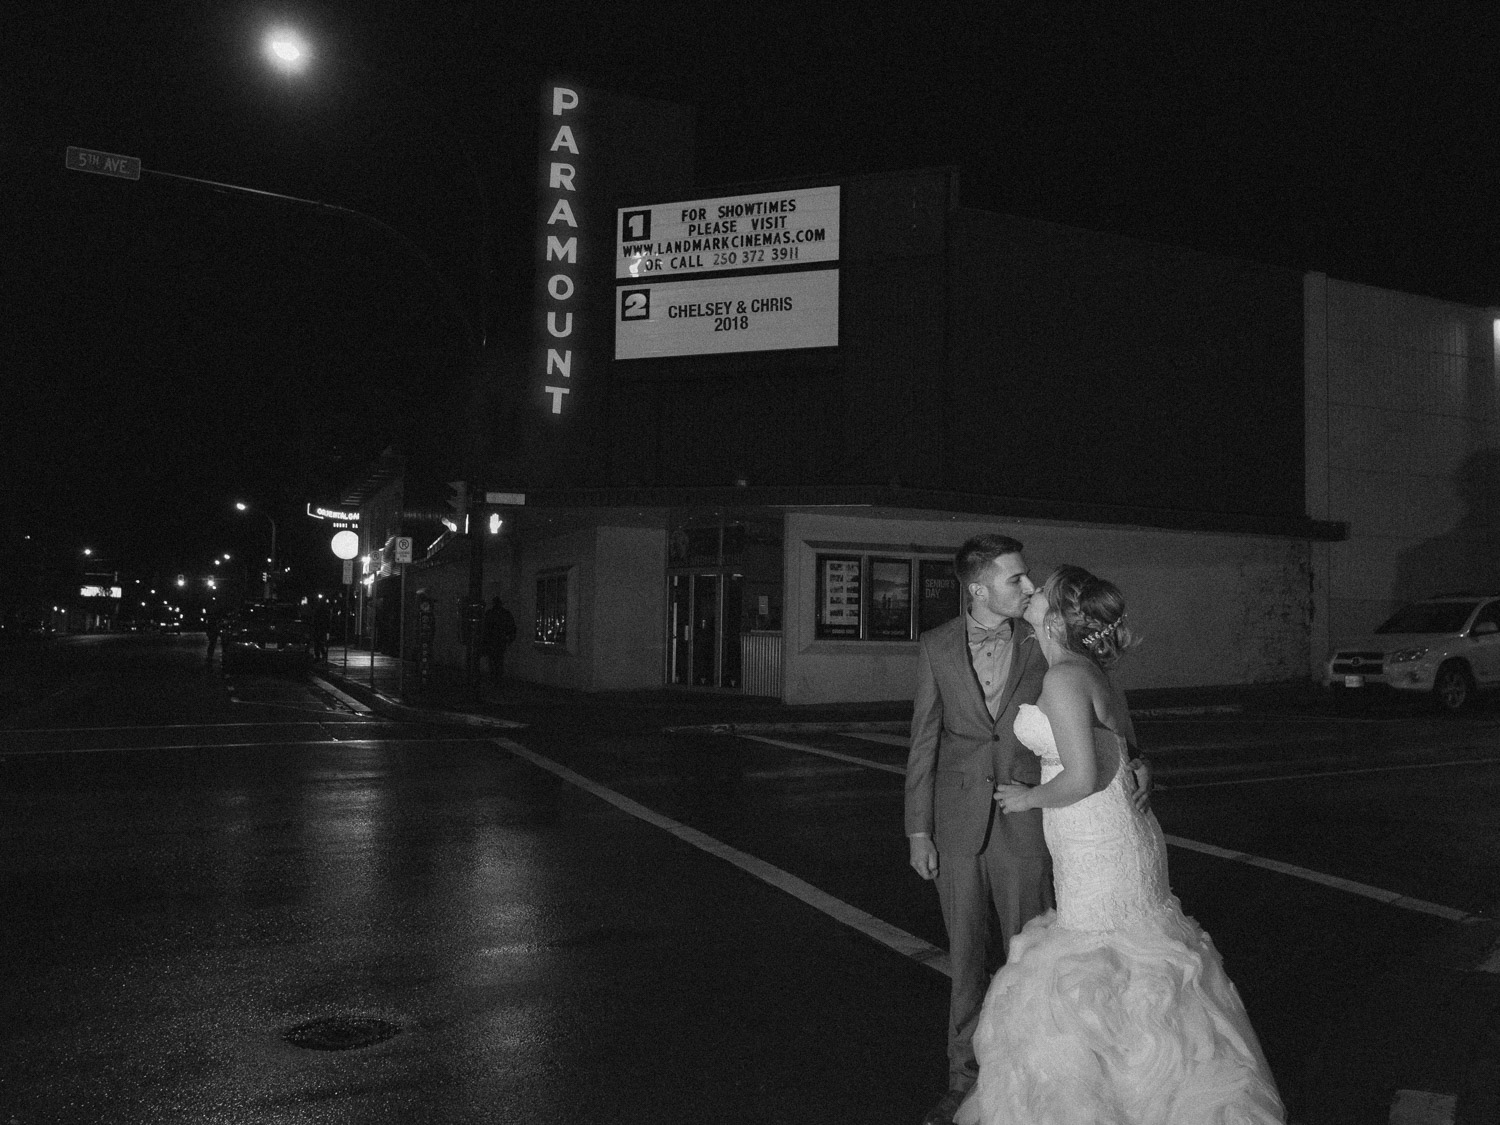 Bride and groom in front of Paramount in Kamloops, BC.